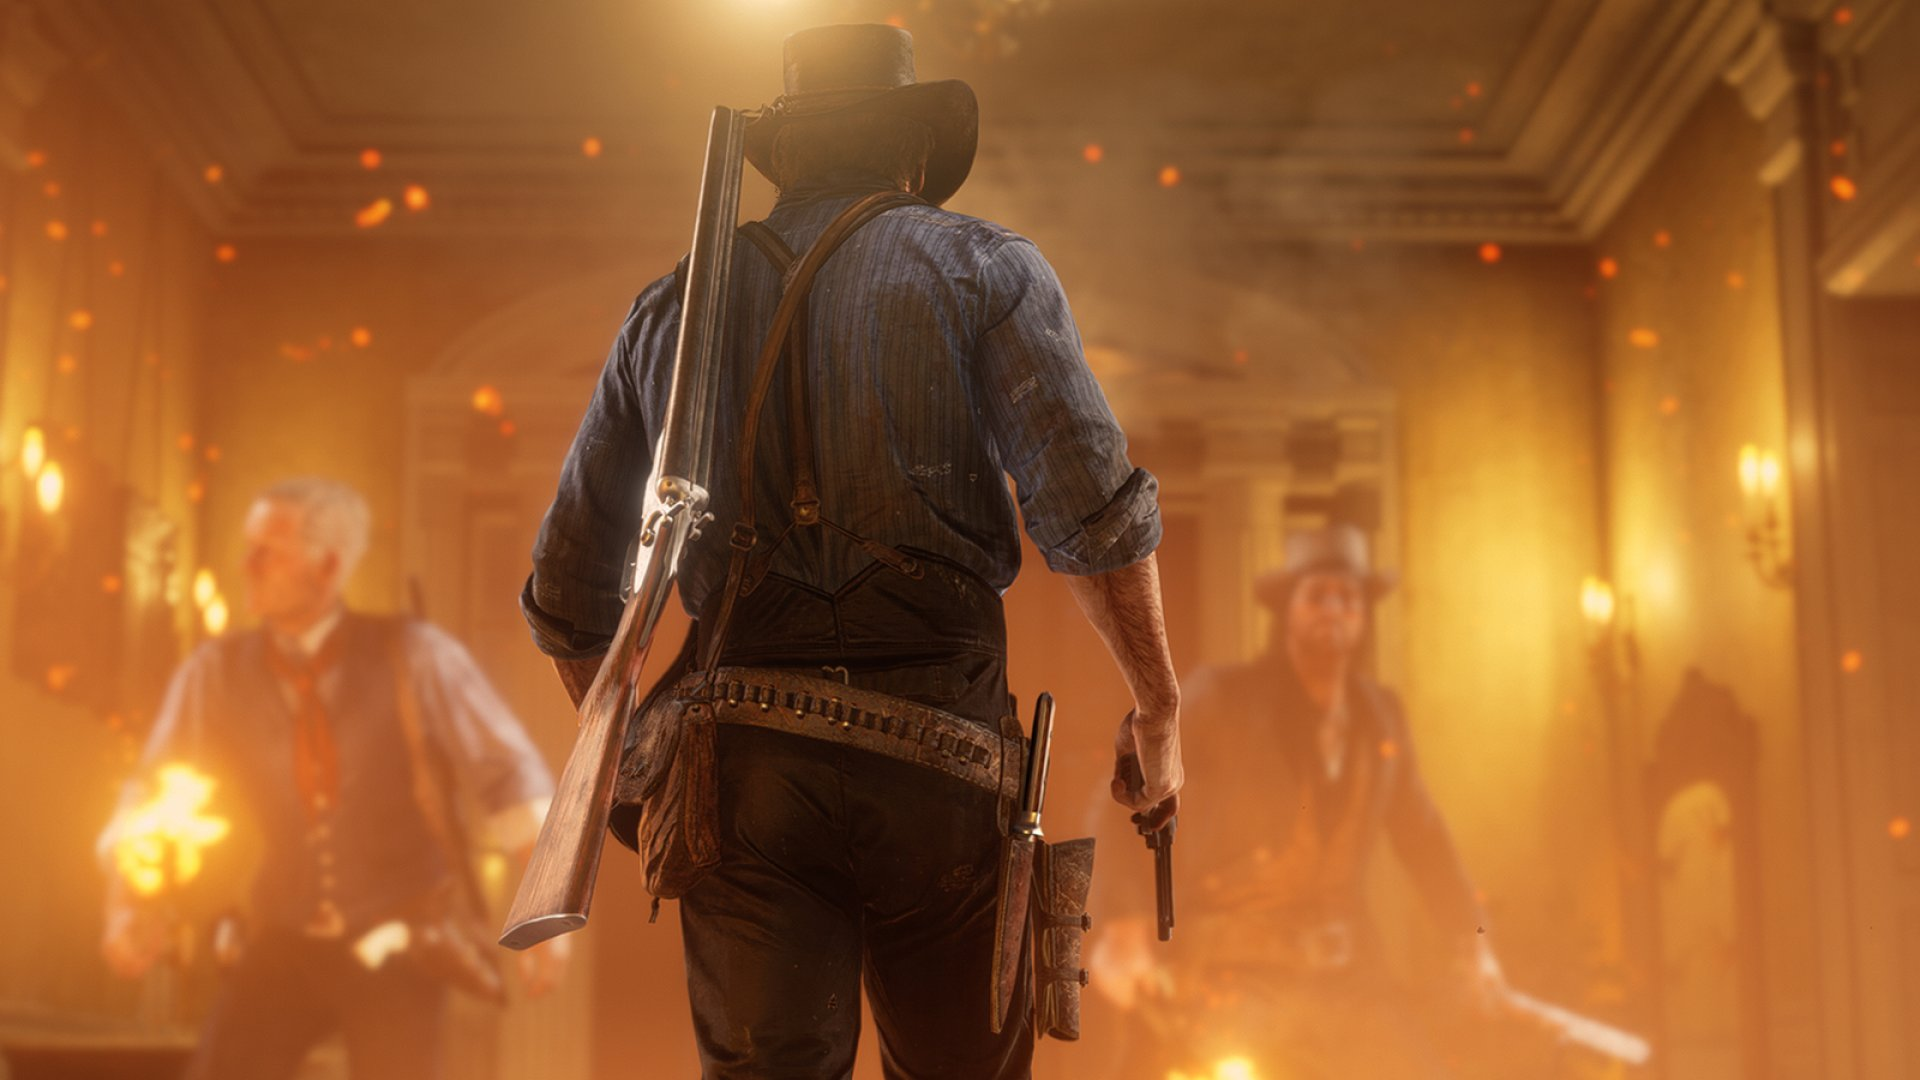 Employees worked 100 hours per week to finish Red Dead Redemption 2. It worked for them, but does it work for you?